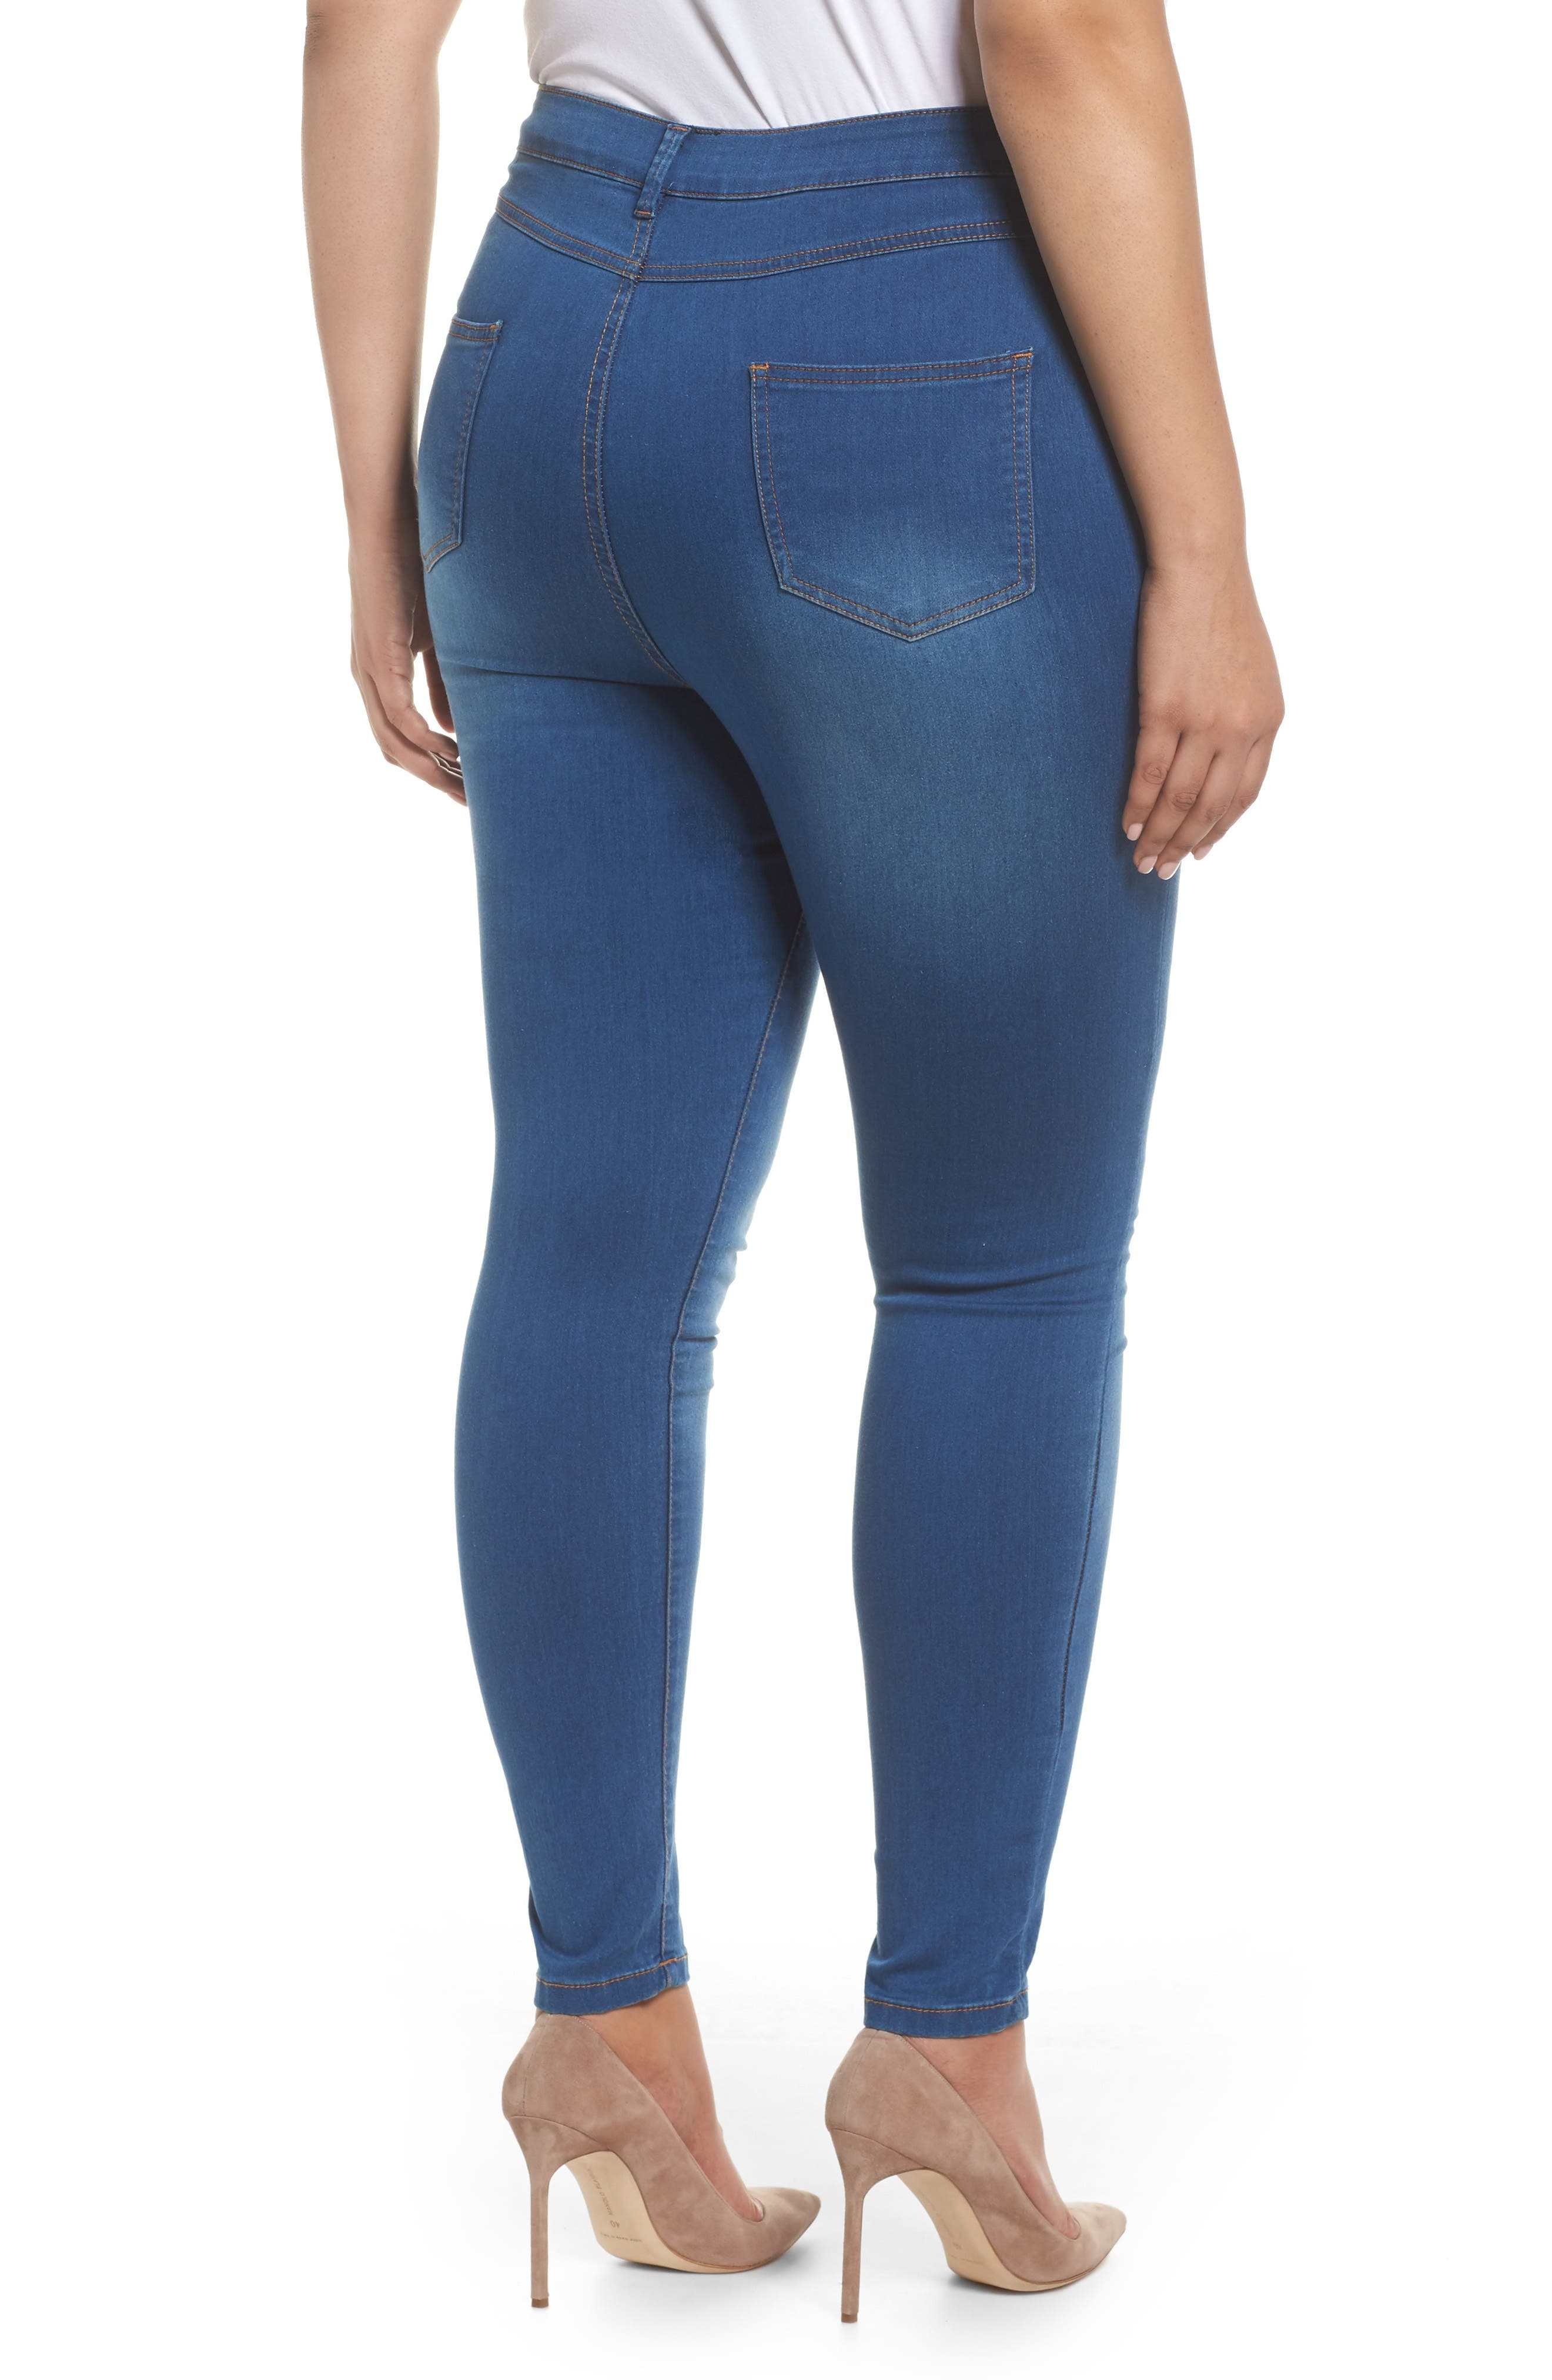 Alternate Image 2  - Evans Skinny Stretch Jeans (Mid Wash) (Plus Size)